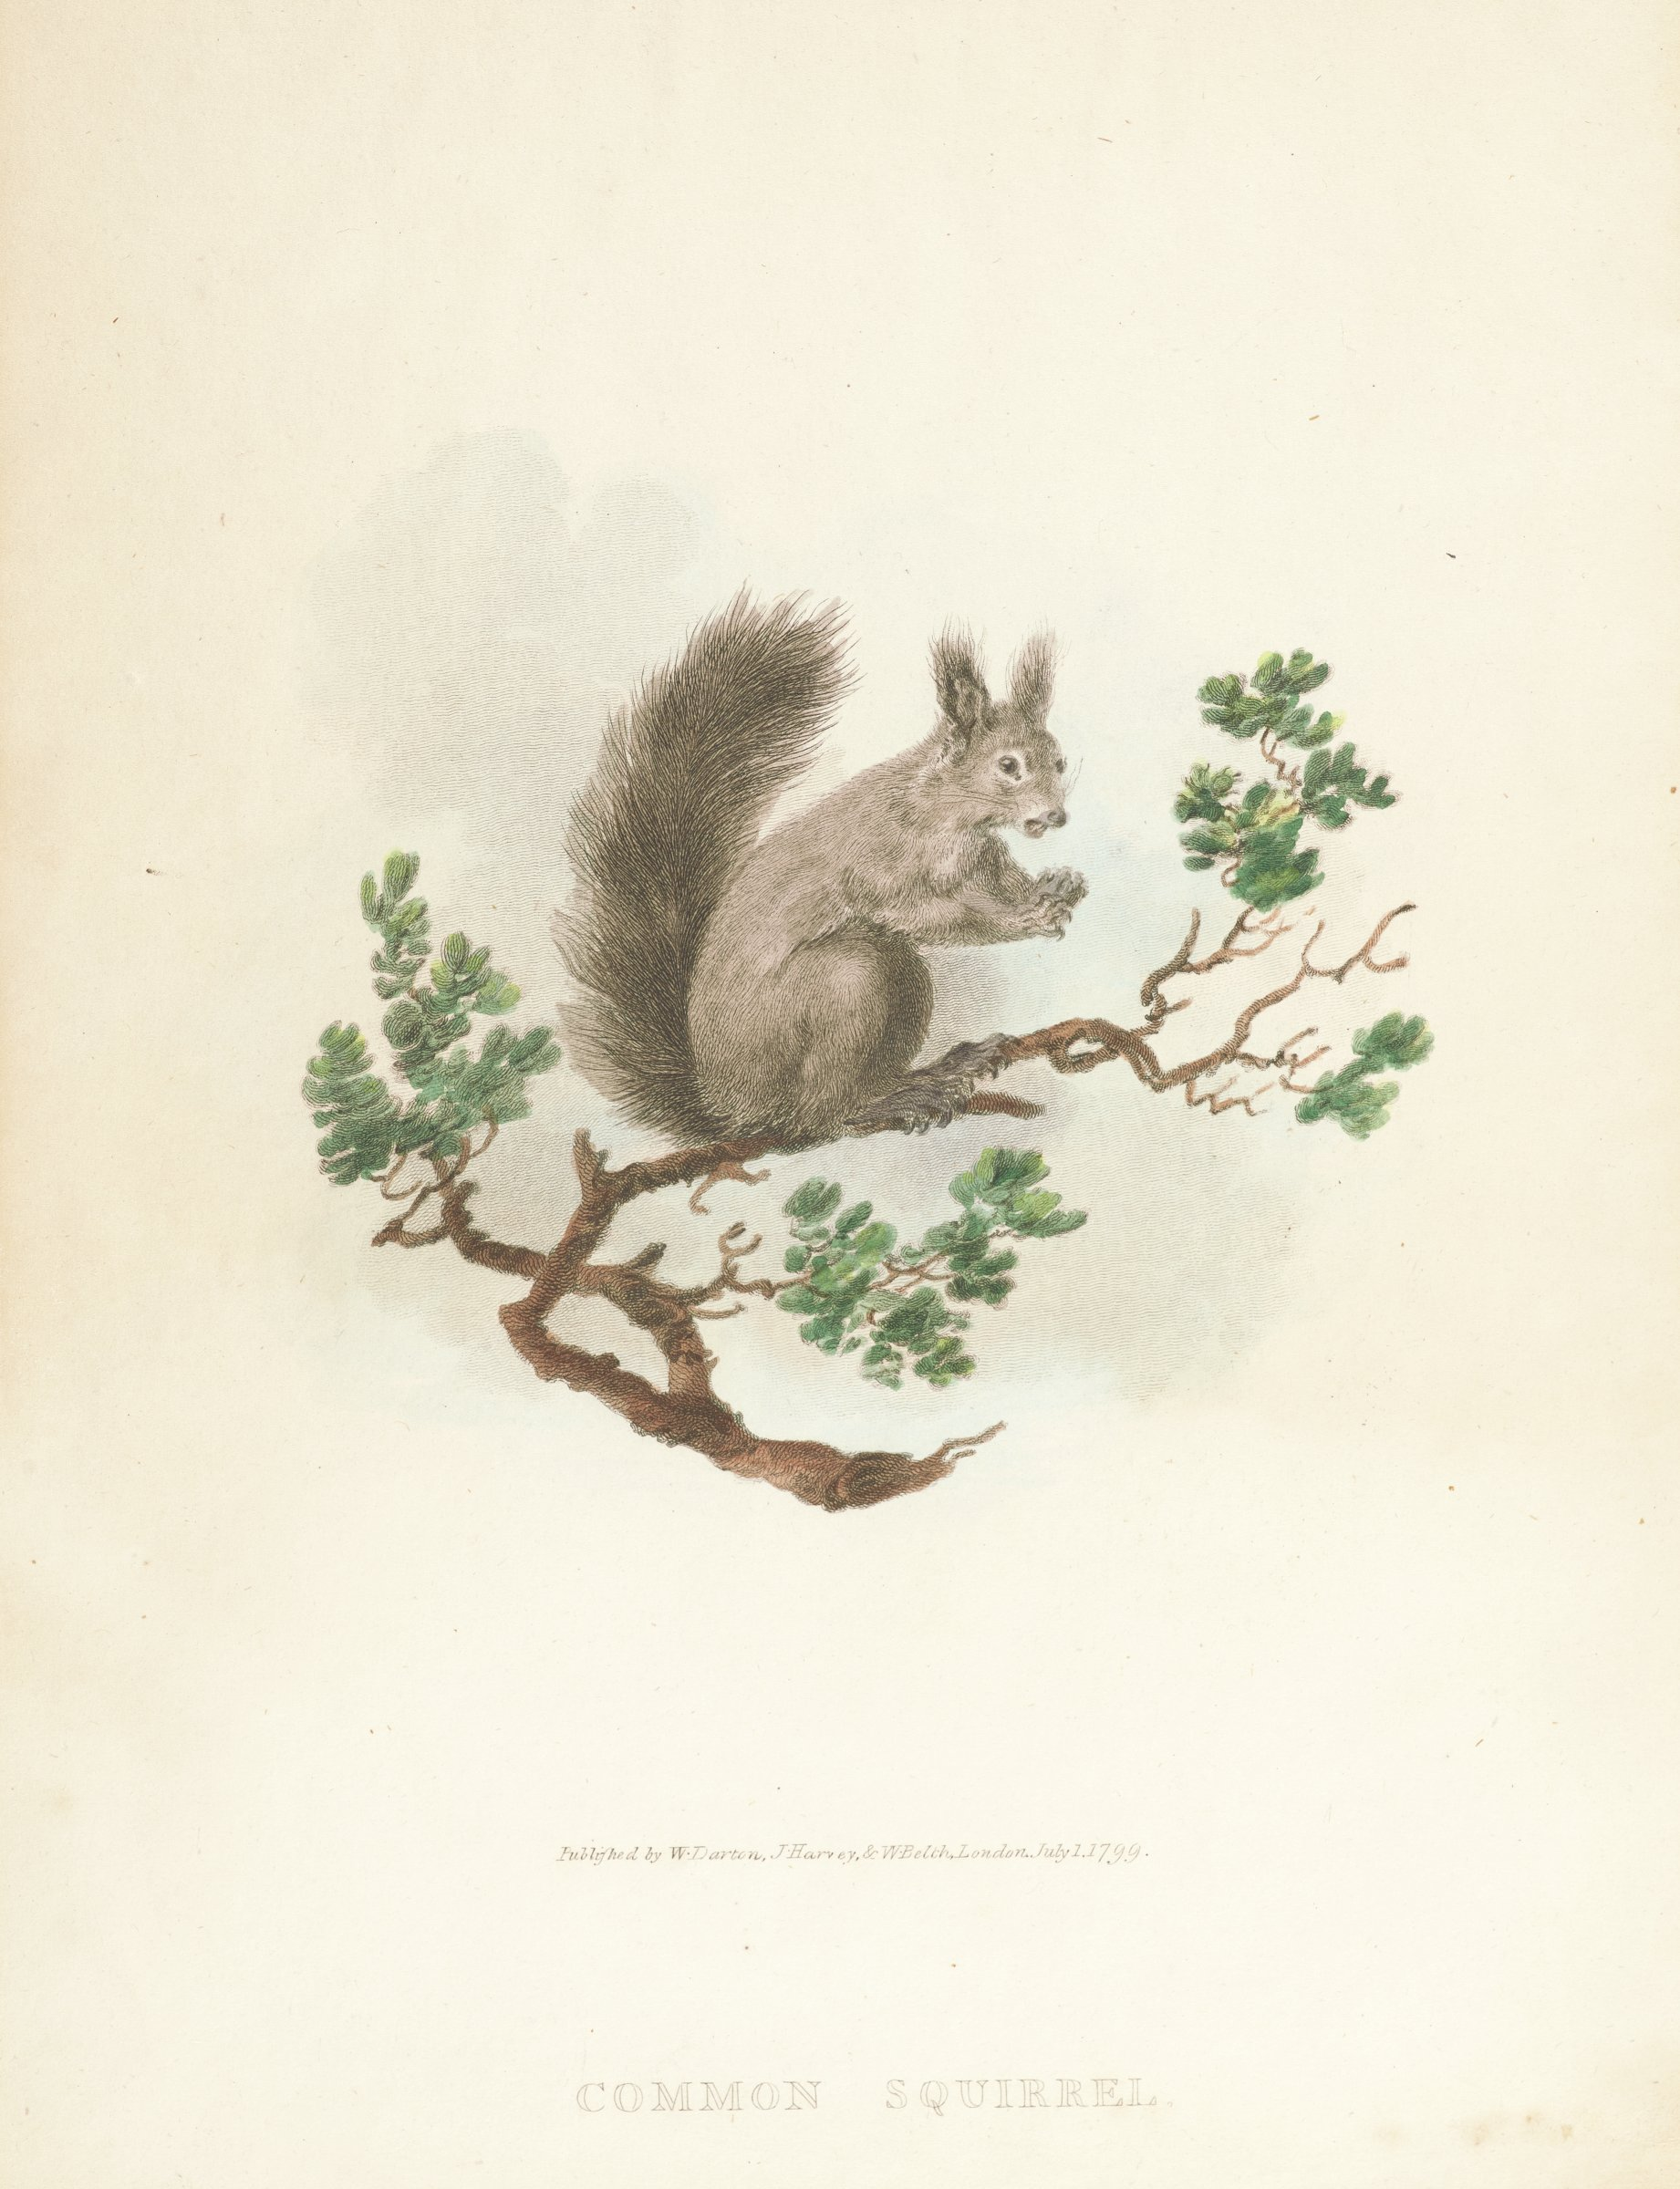 A squirrel sits in profile view on a tree branch looking slightly to the right. Two text pages accompany the print.